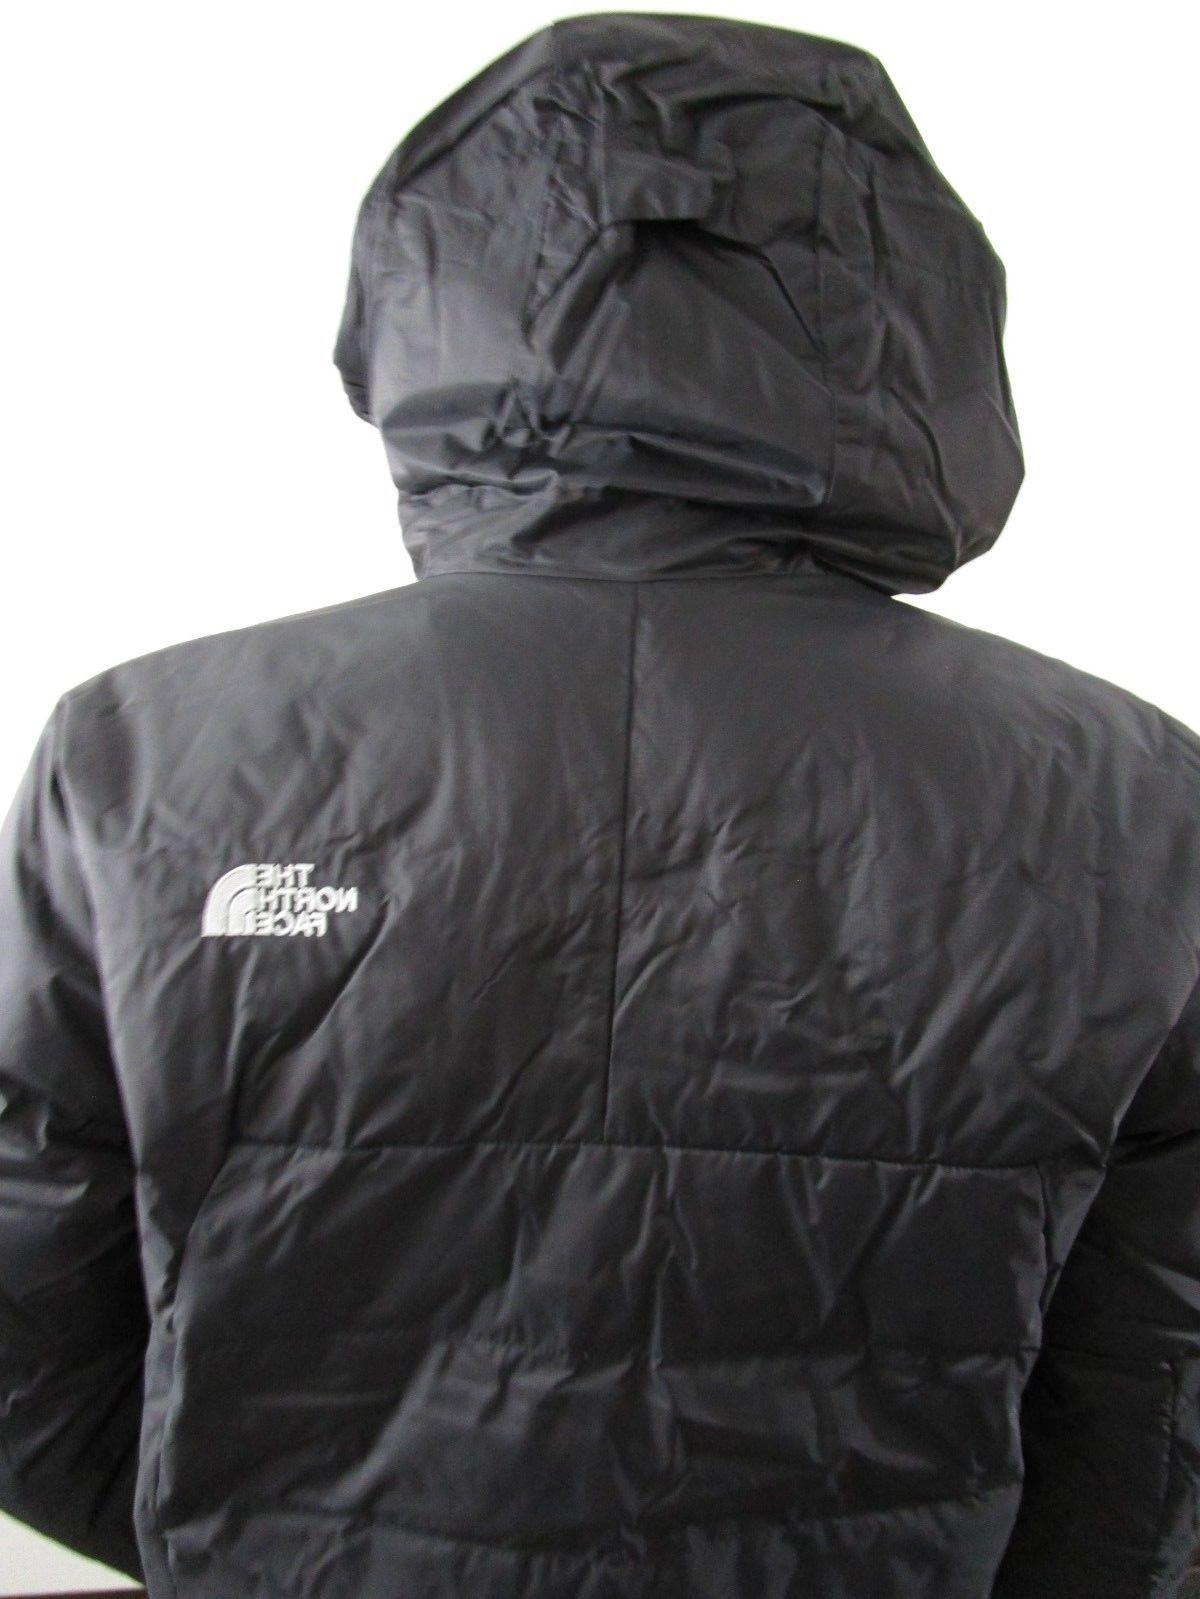 NWT The North Face Gatebreak 550-Down Black